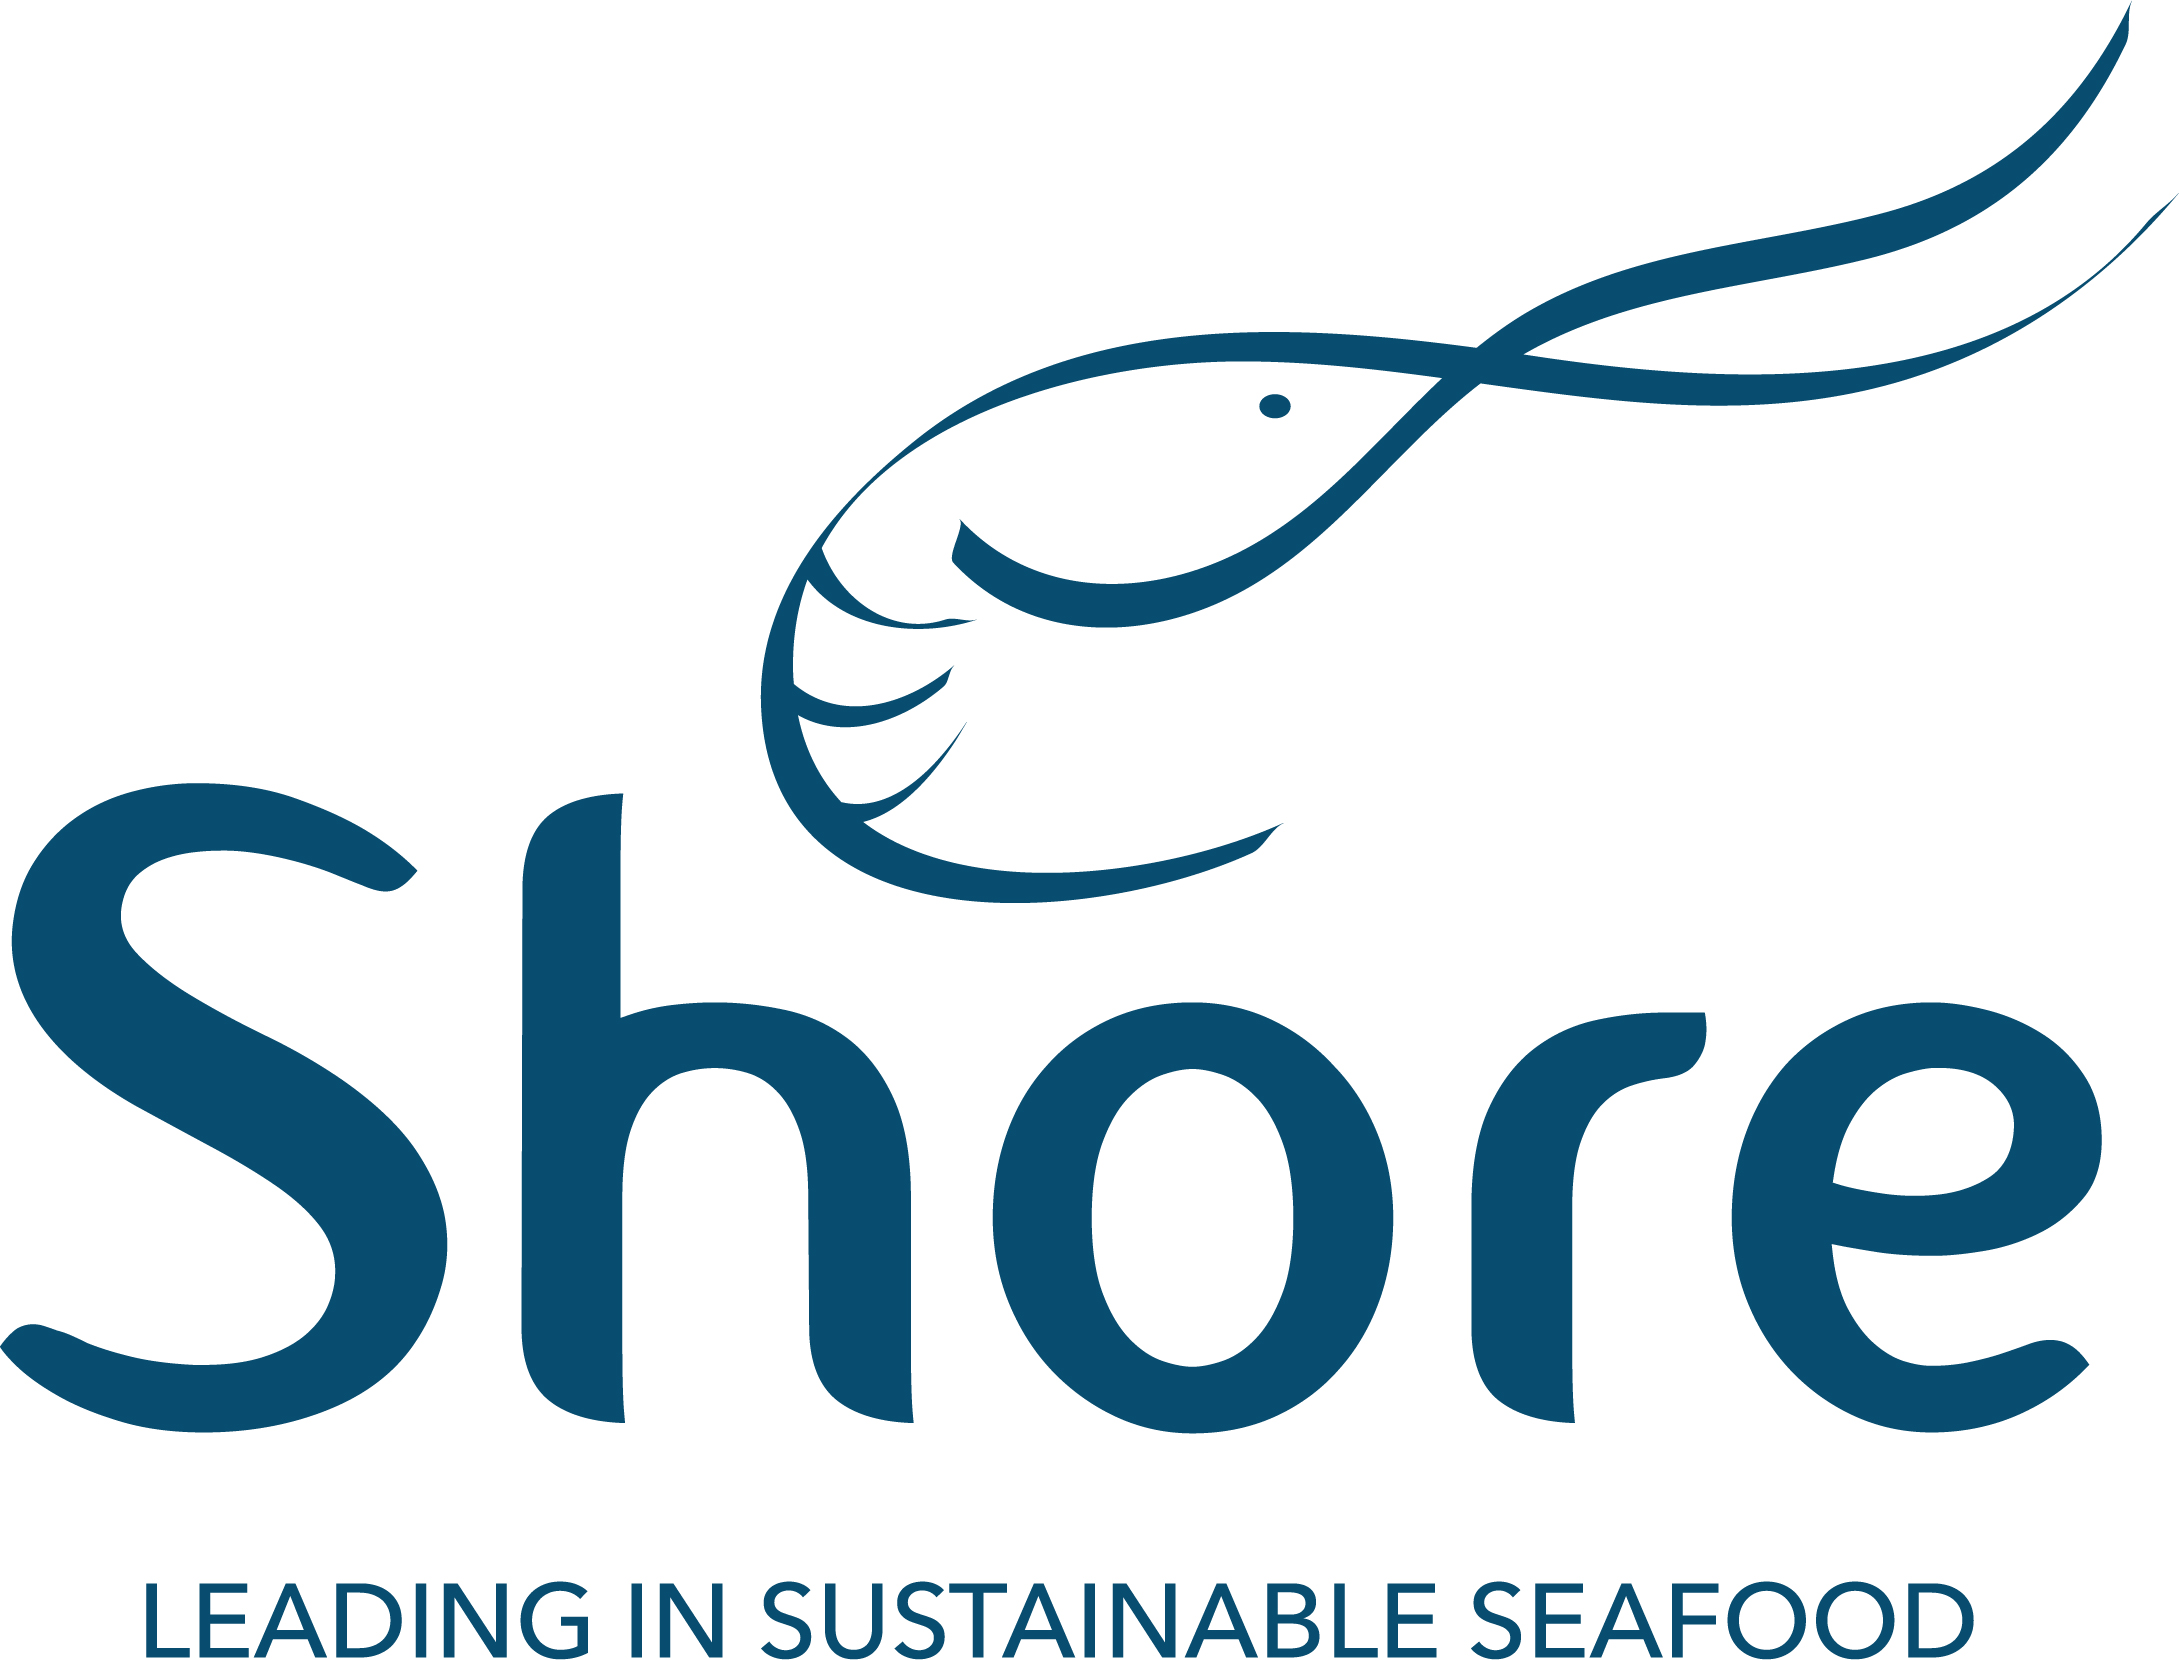 Shore - leading in sustainable seafood